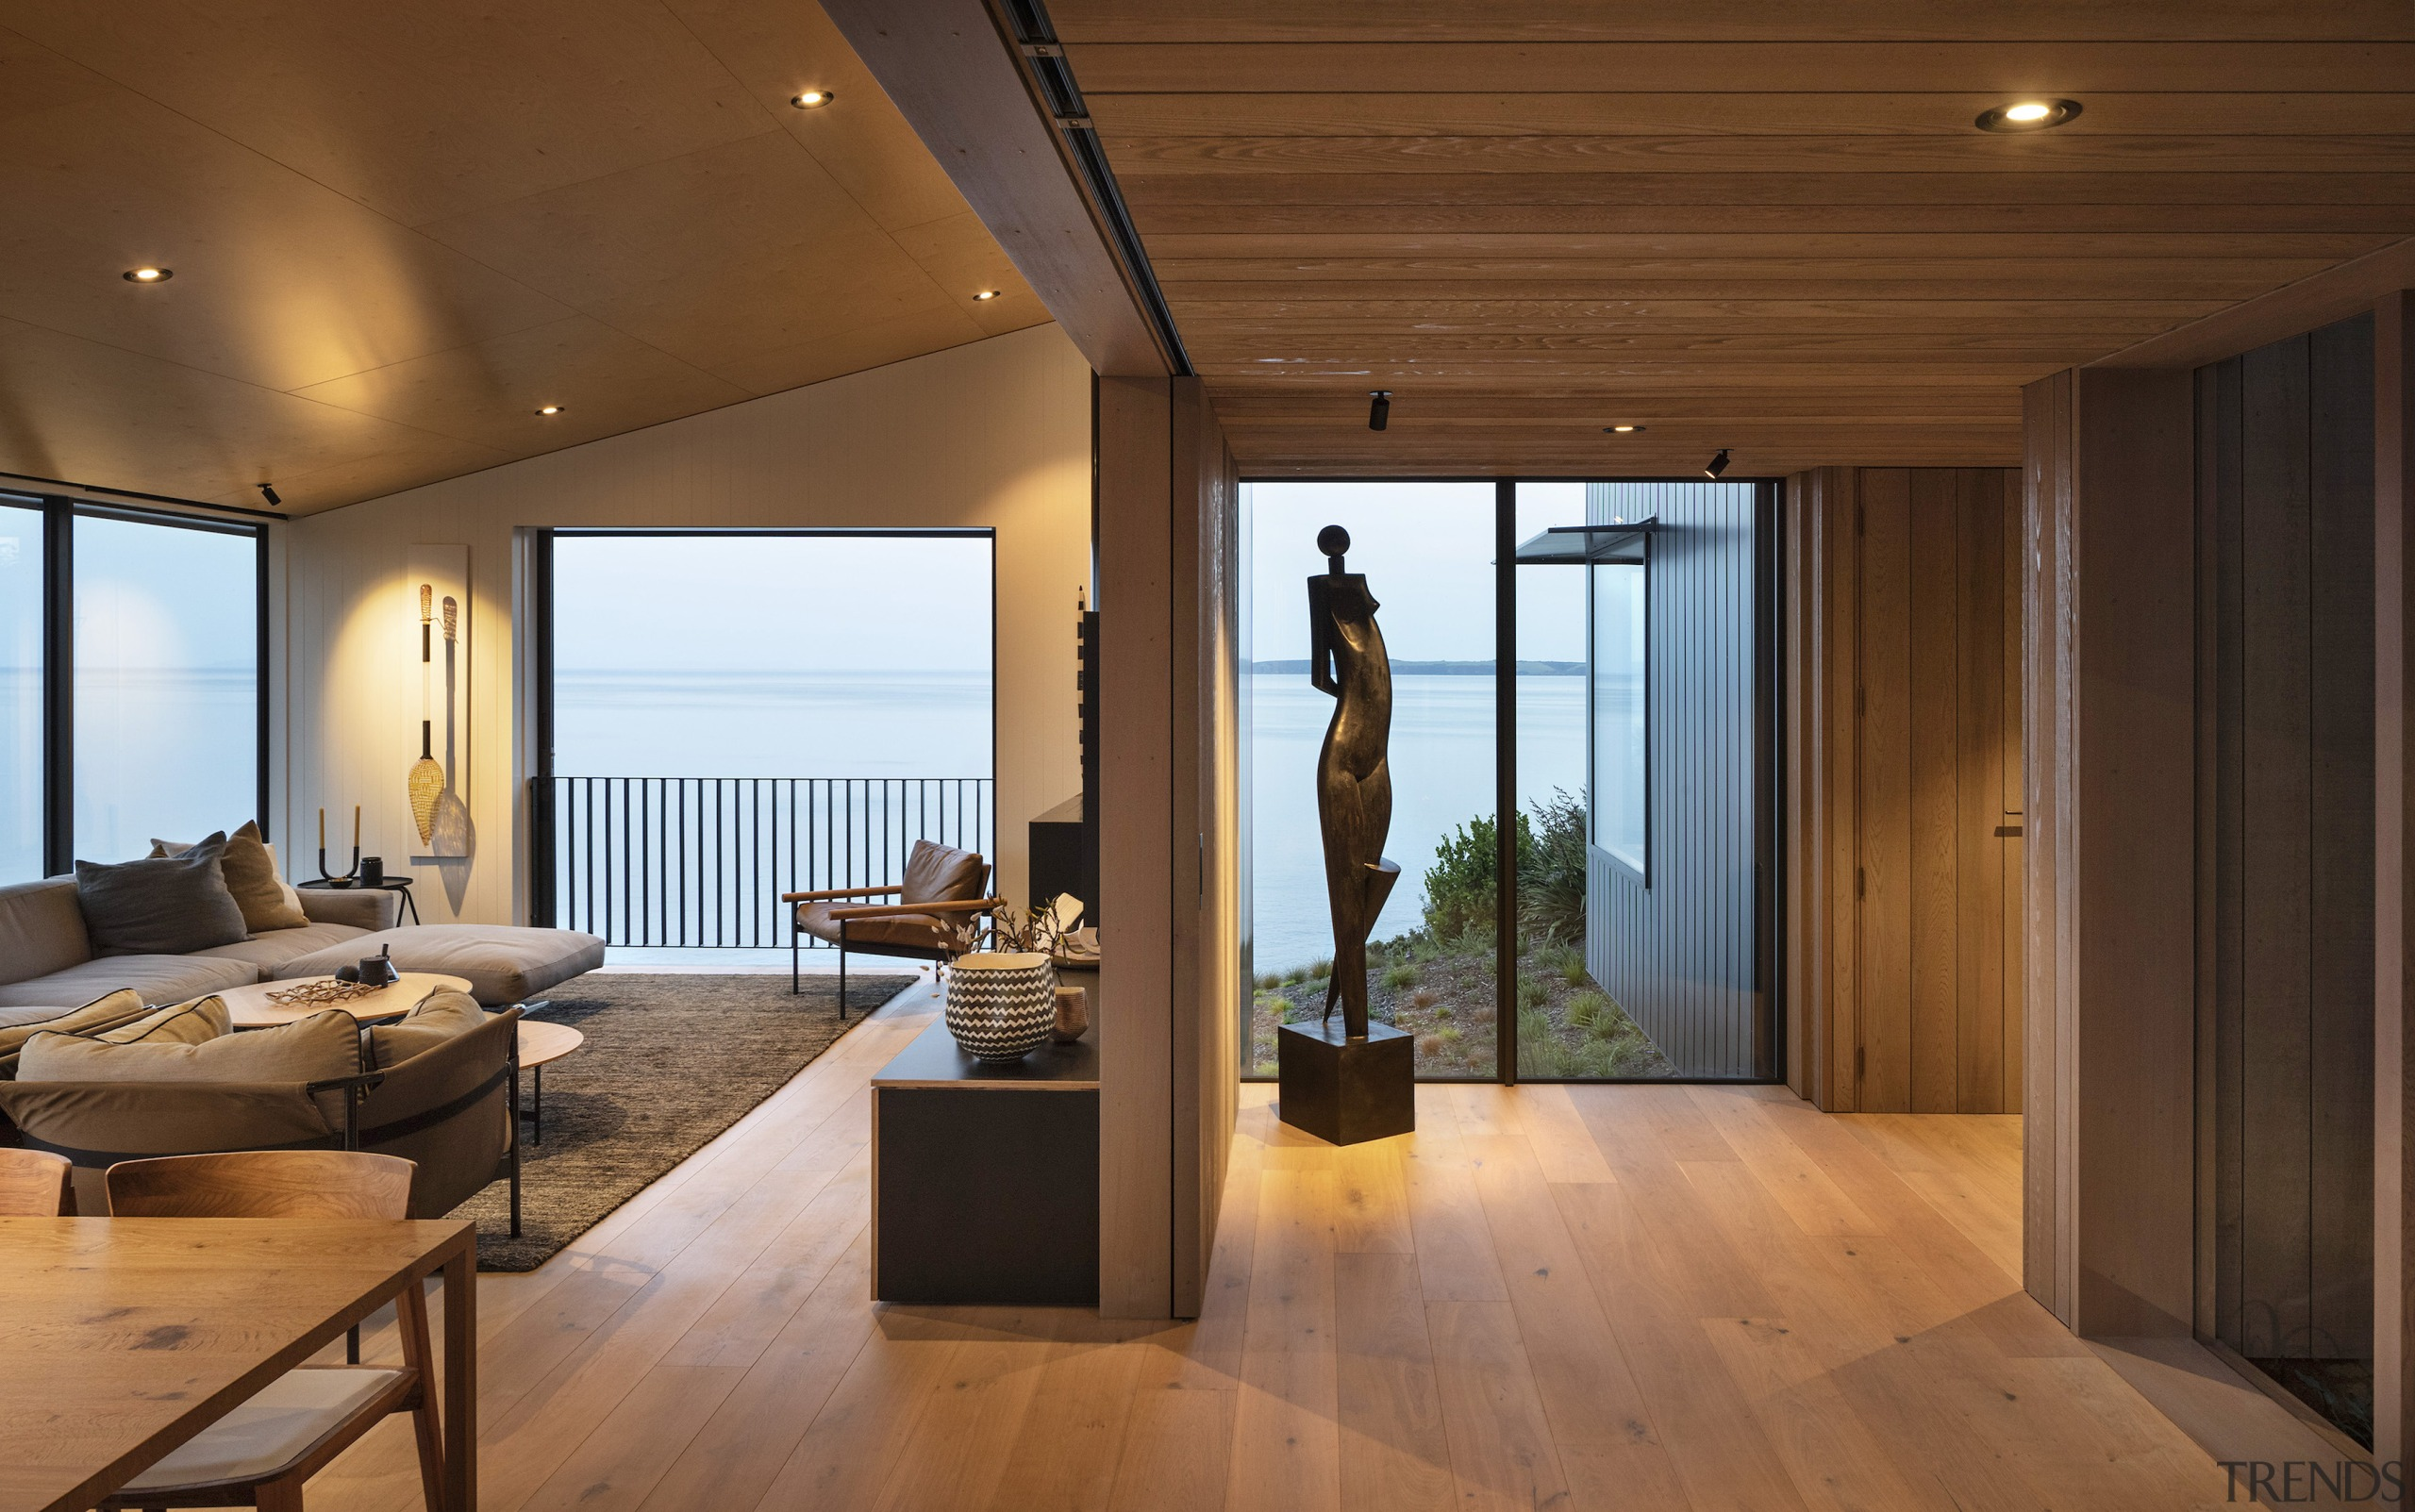 Wood interior cladding and wood floors add to